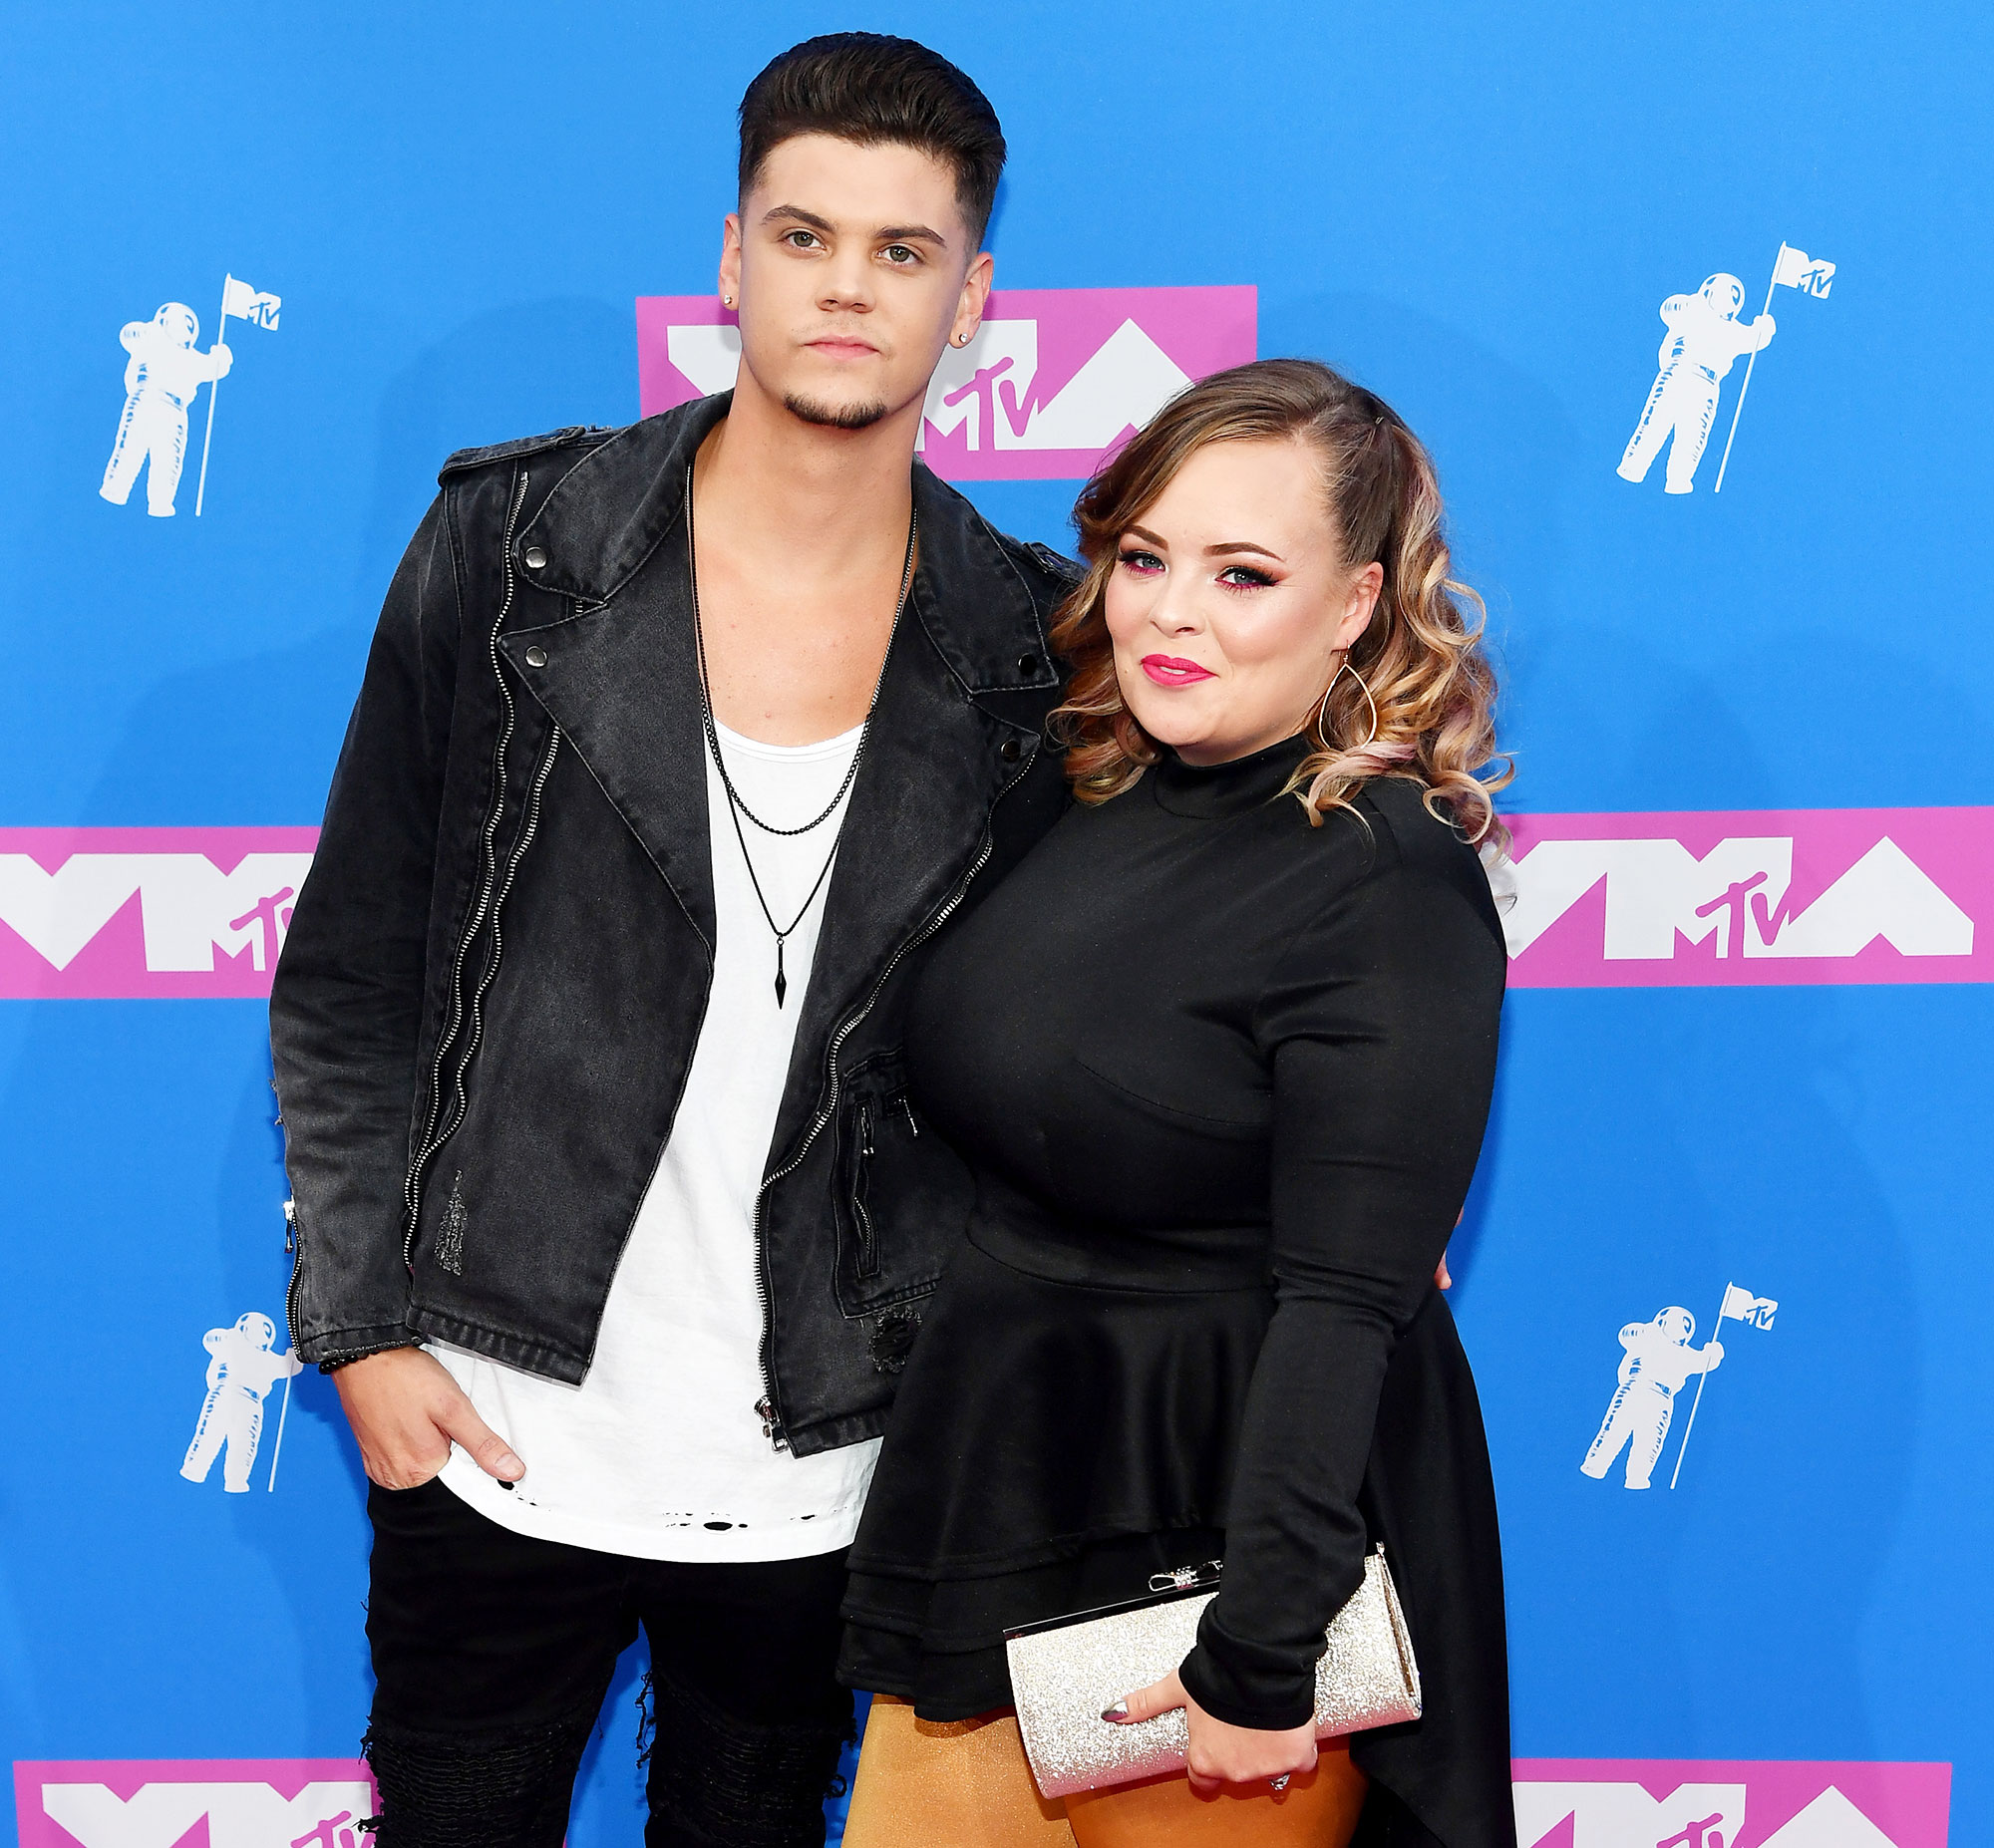 Pregnant Catelynn Lowell Contractions - Tyler Baltierra and Catelynn Lowell attend the MTV Video Music Awards at Radio City Music Hall on August 20, 2018 in New York City.